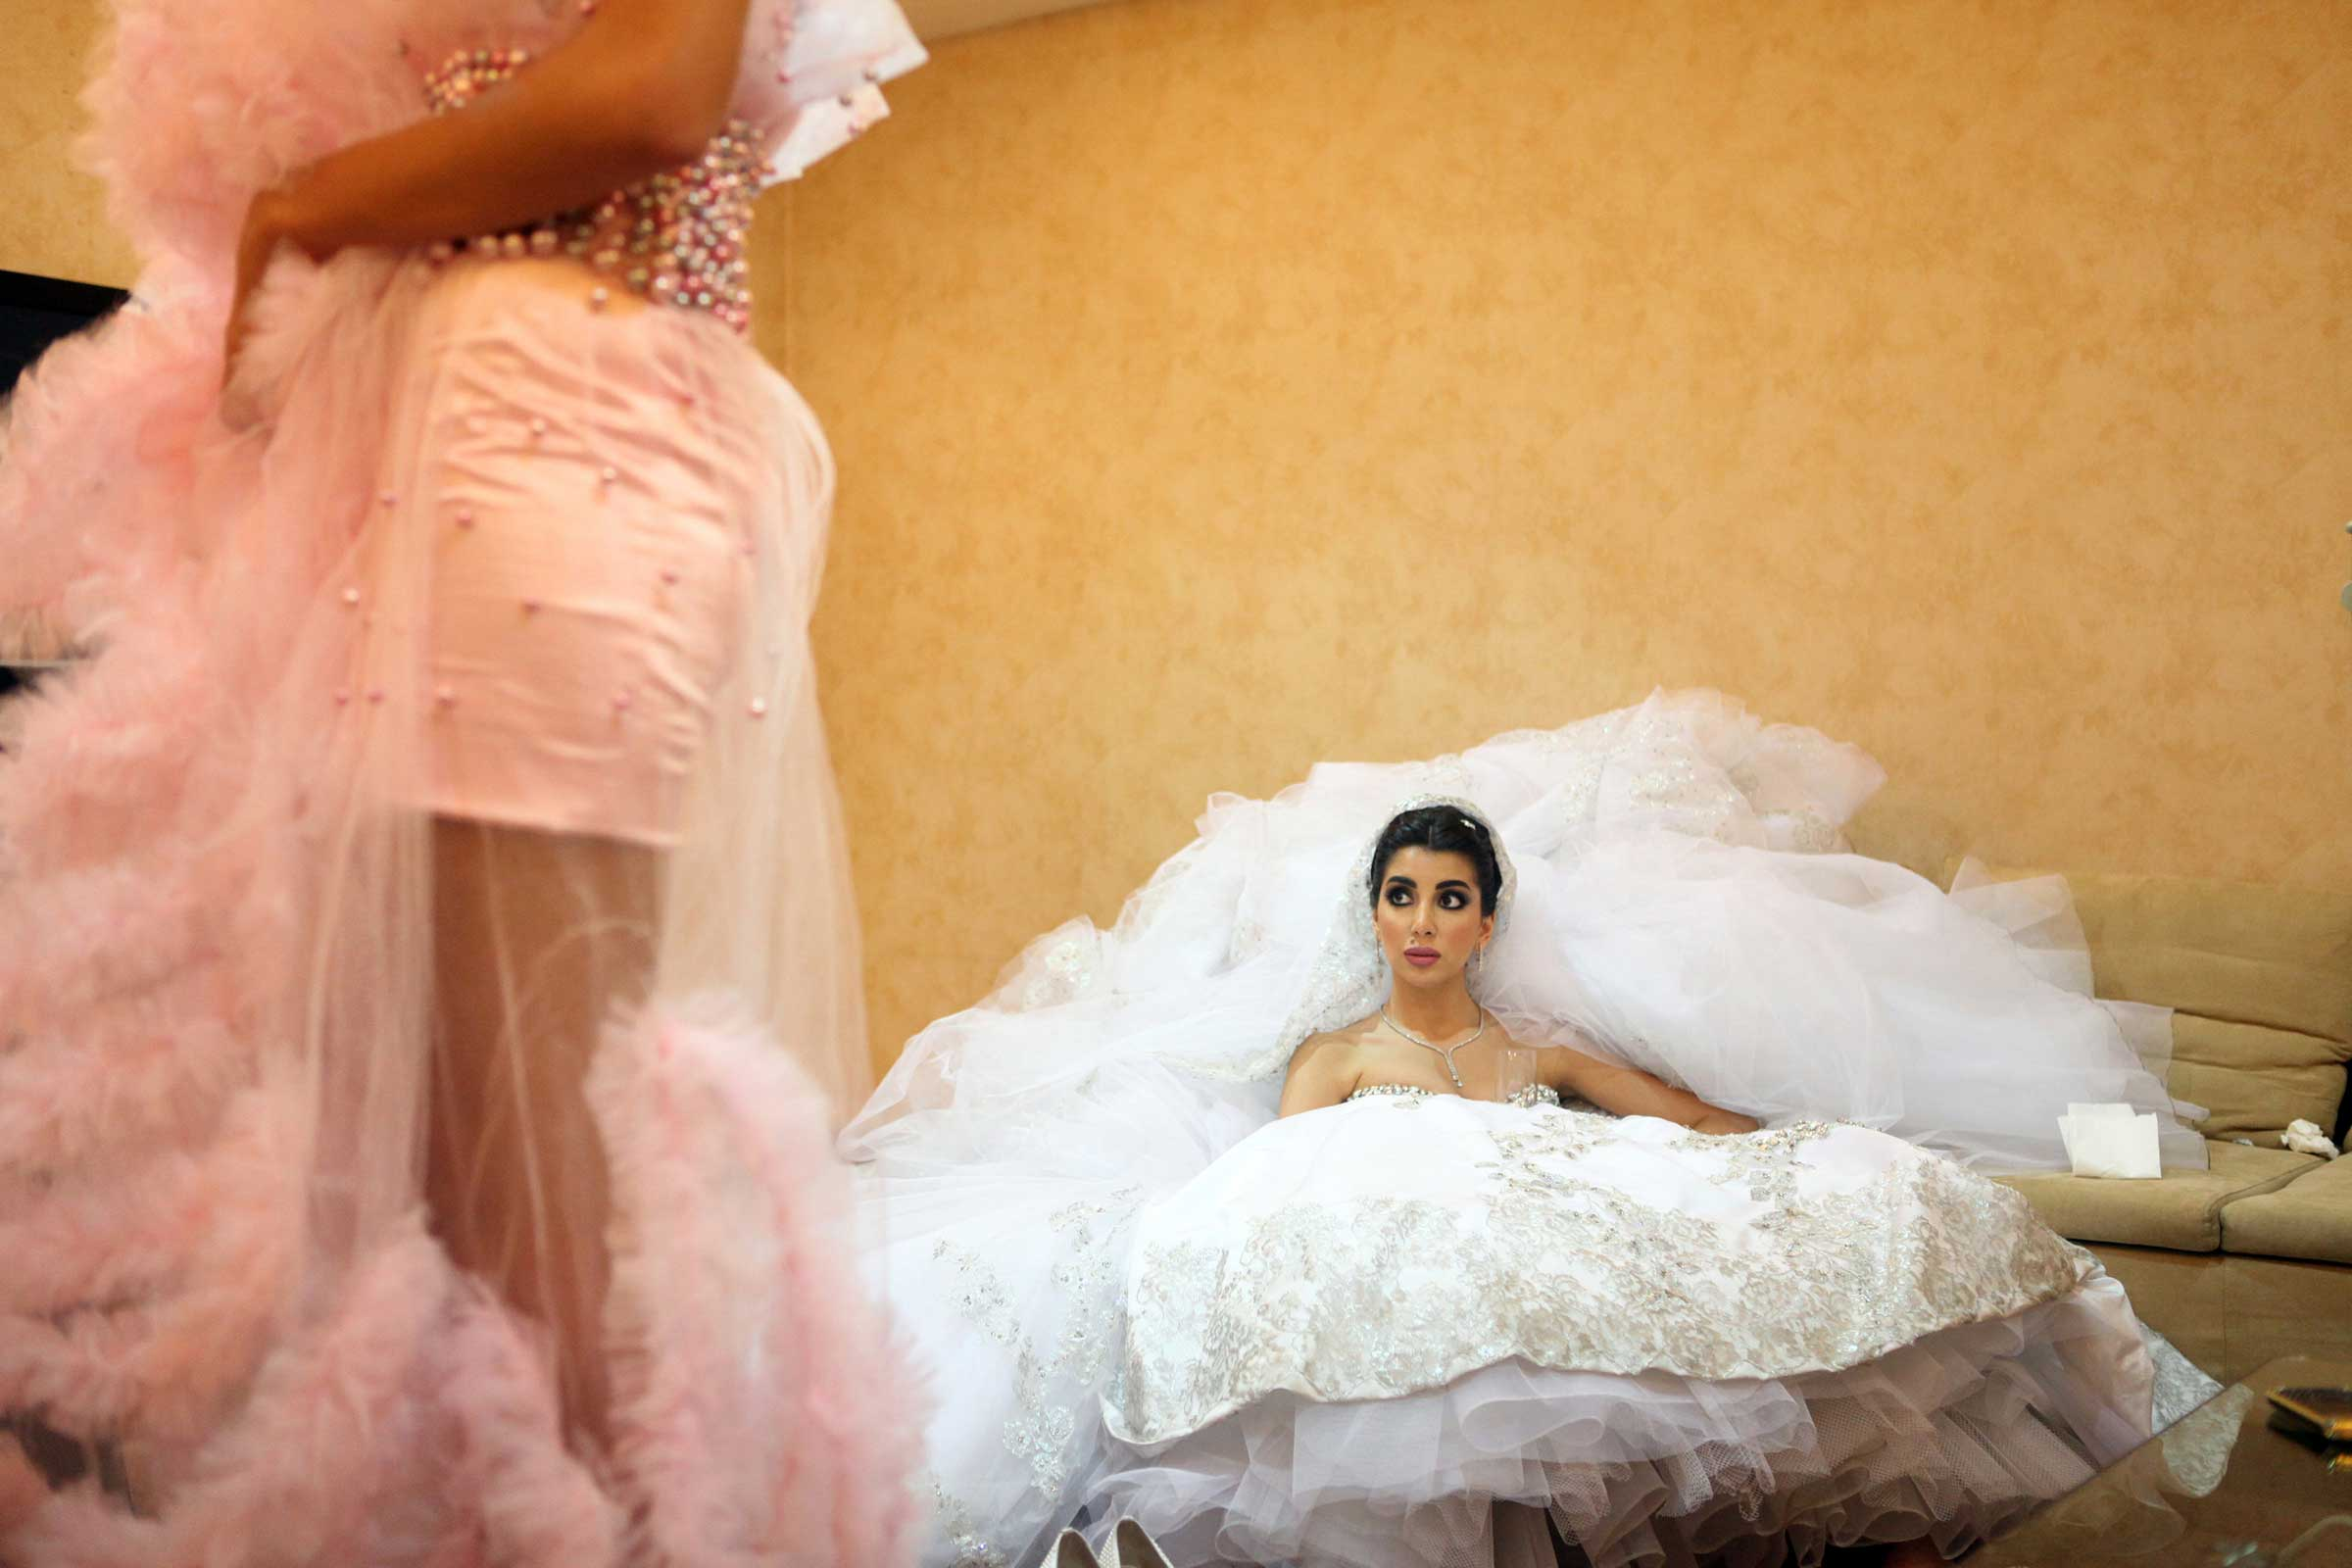 Sara, 22, who graduated five days before her wedding, waits in a holding room before she makes her entrance to her 650- guest wedding in BIEL Center, Beirut, Lebanon. Her dress weighs 15 kilos.